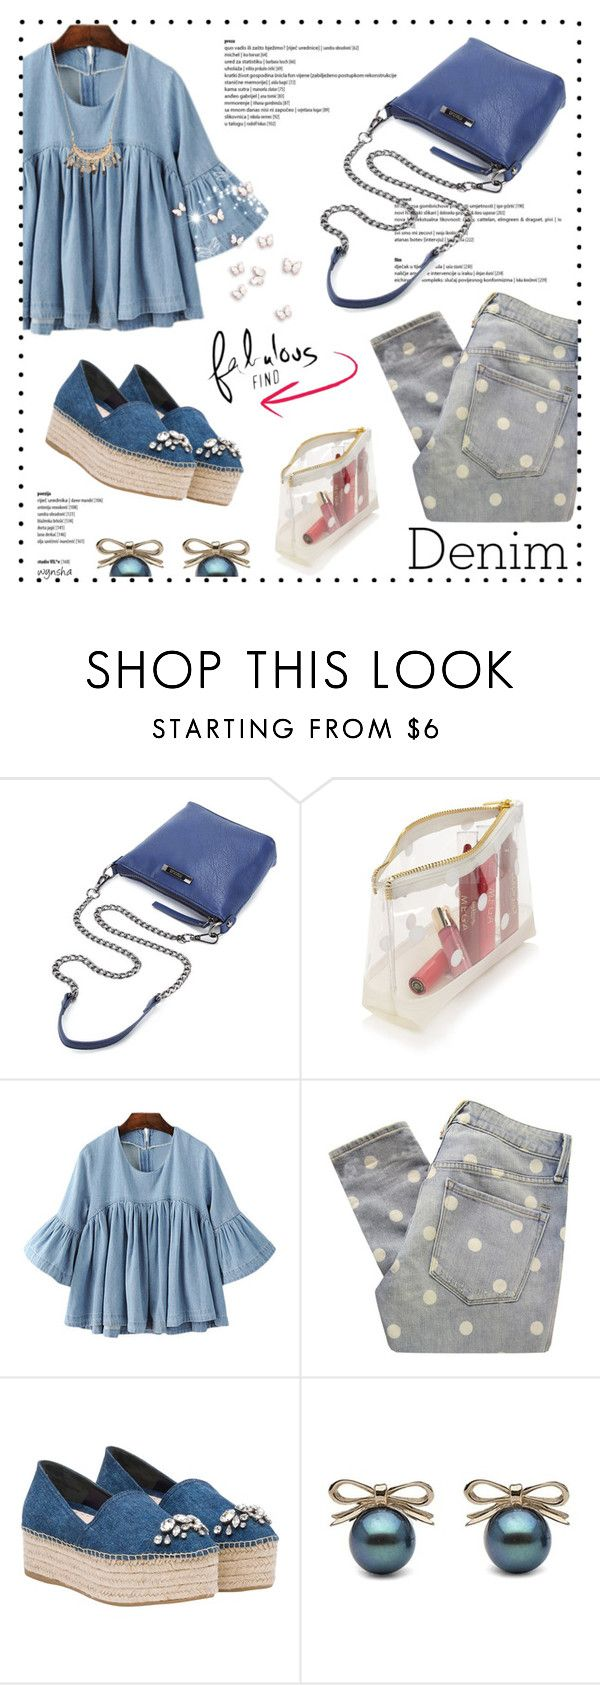 """""""Good JEANS #3"""" by wynsha ❤ liked on Polyvore featuring Forever 21, Marc by Marc Jacobs, Miu Miu, Accessorize, jeans, Denimondenim, polyvorecommunity, polyvorecontest and polyvorefashion"""